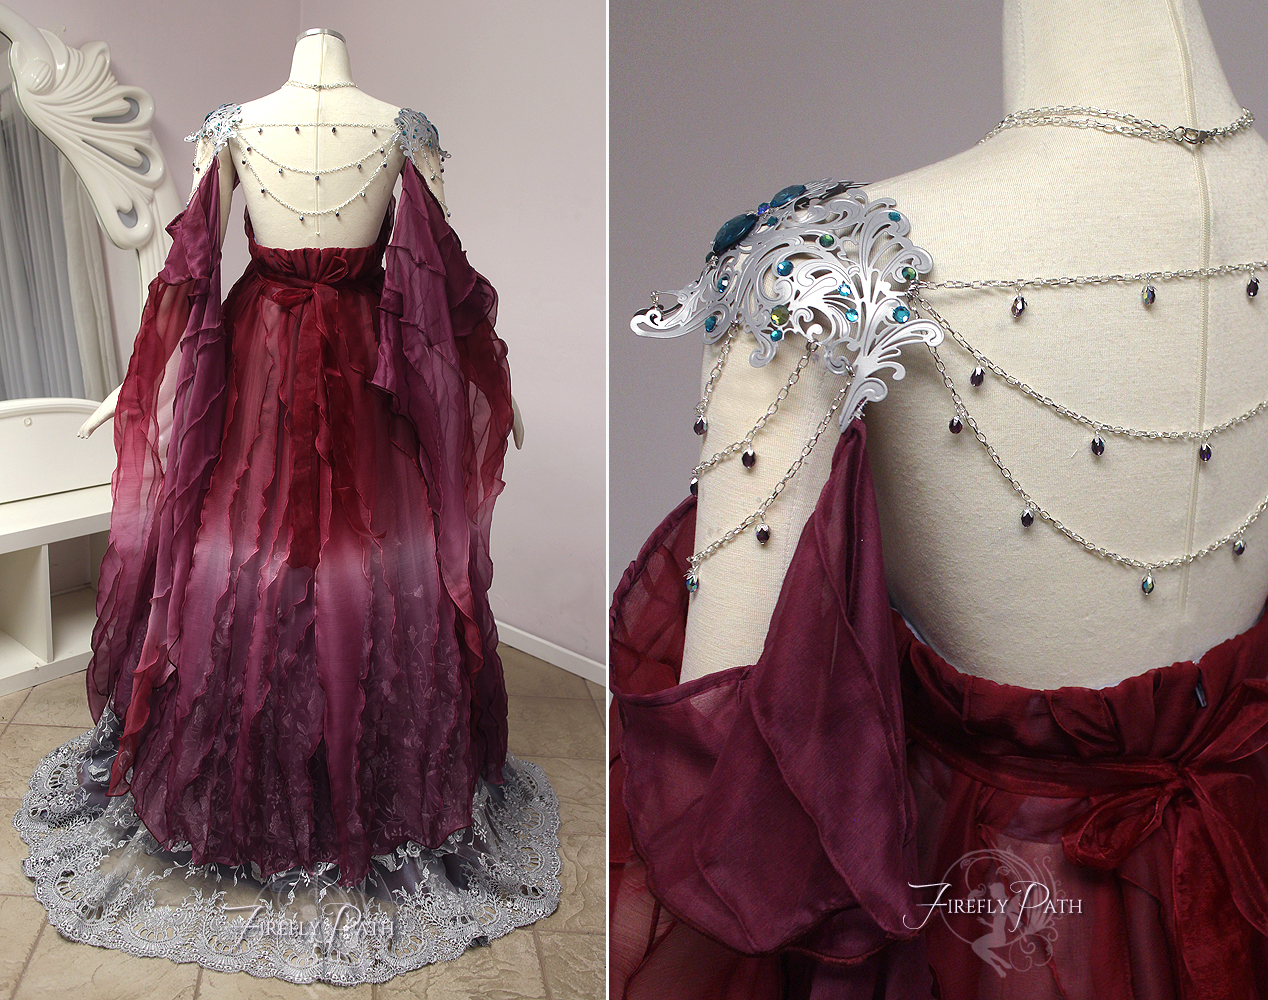 Elegant Armor Gown Back View by Firefly Path on DeviantArt